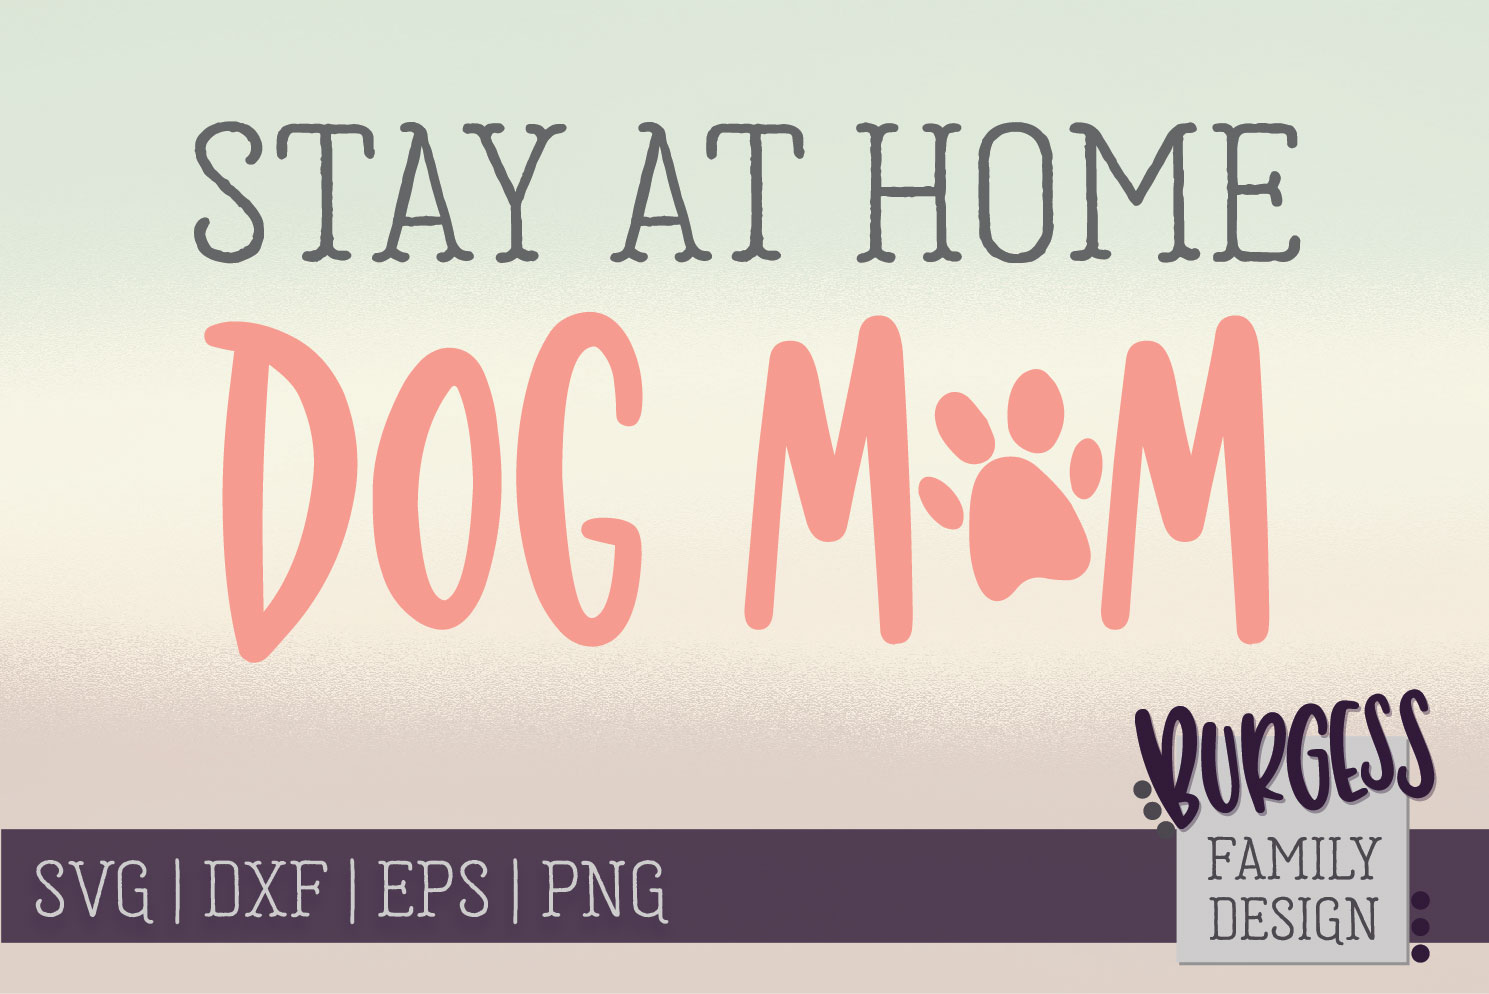 Stay at home dog mom | SVG DXF EPS PNG example image 1